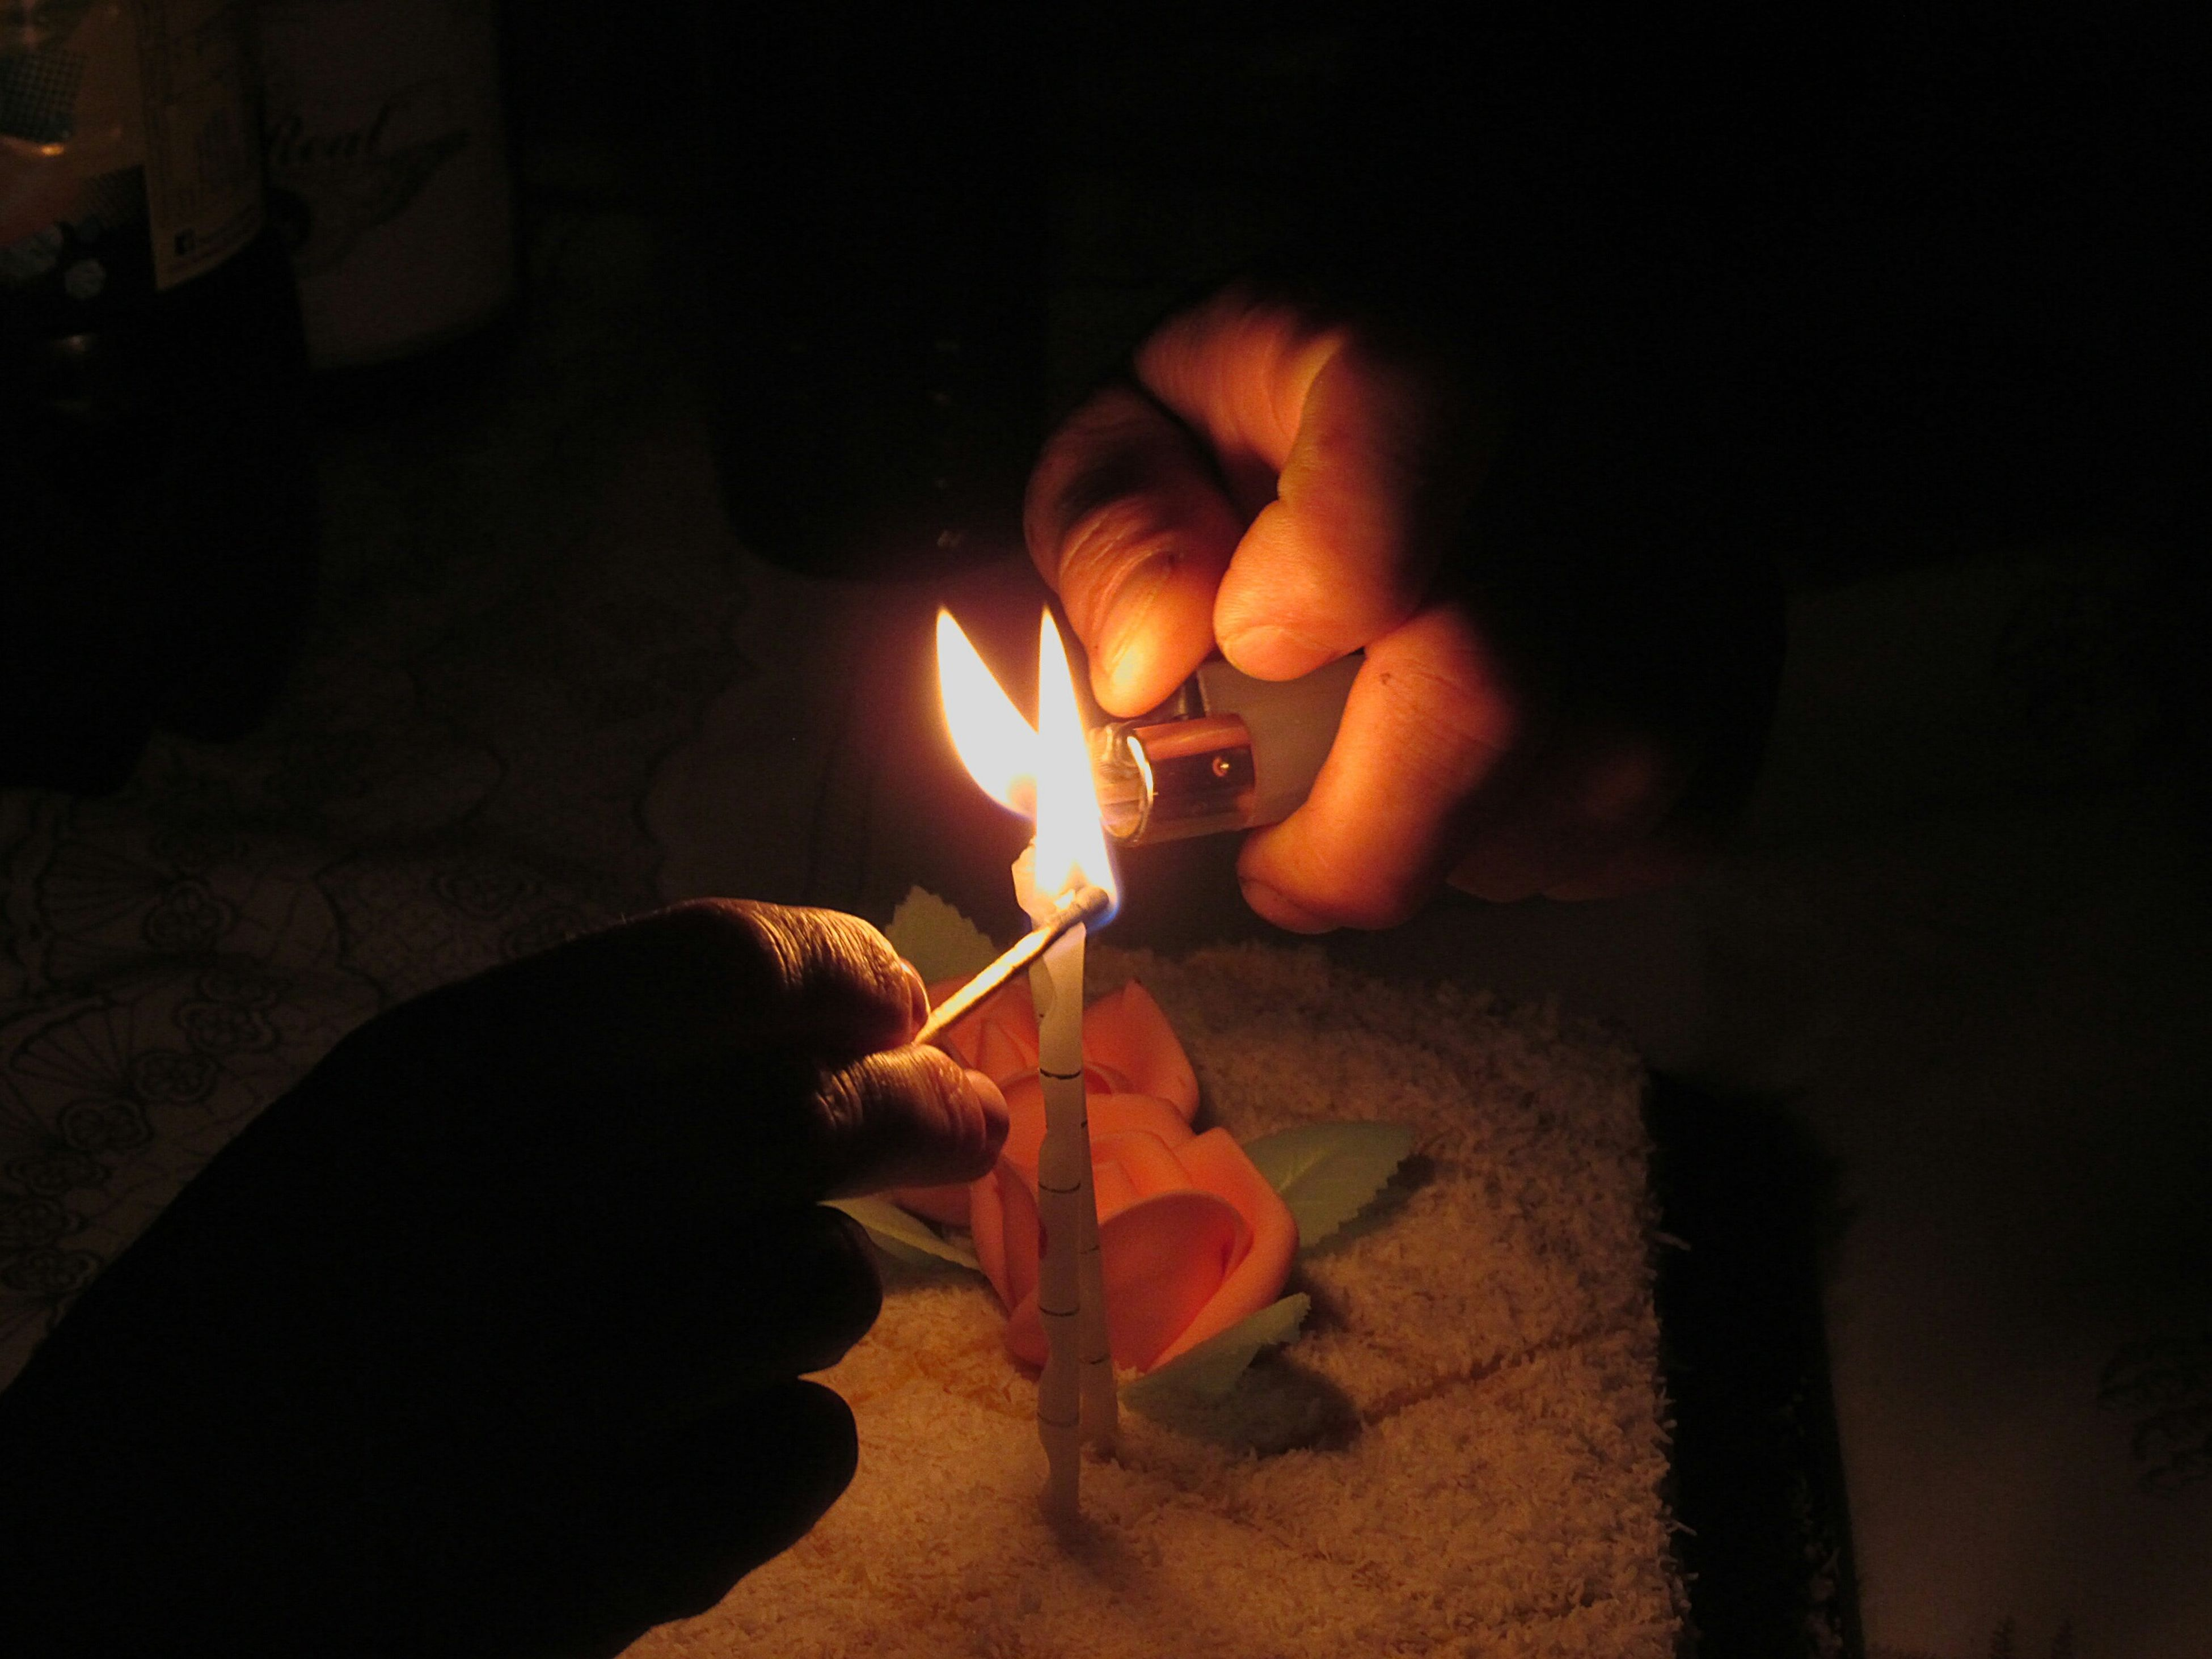 person, holding, lifestyles, men, leisure activity, burning, flame, unrecognizable person, illuminated, night, part of, fire - natural phenomenon, human finger, cropped, indoors, glowing